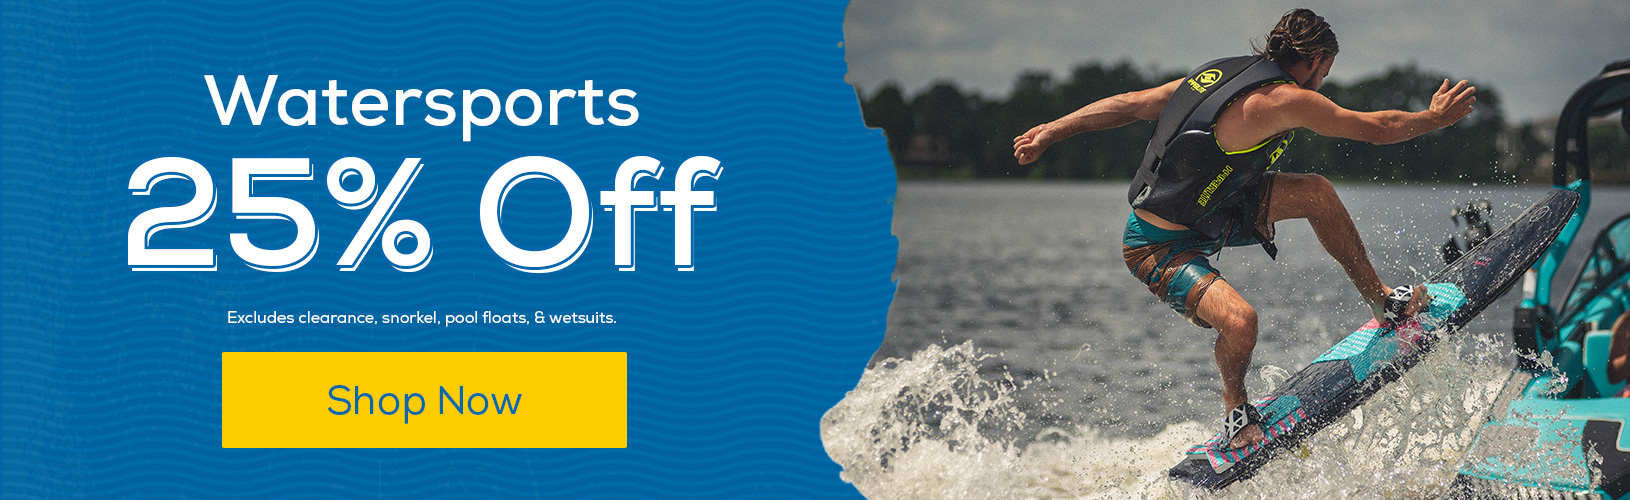 Watersports 25% Off